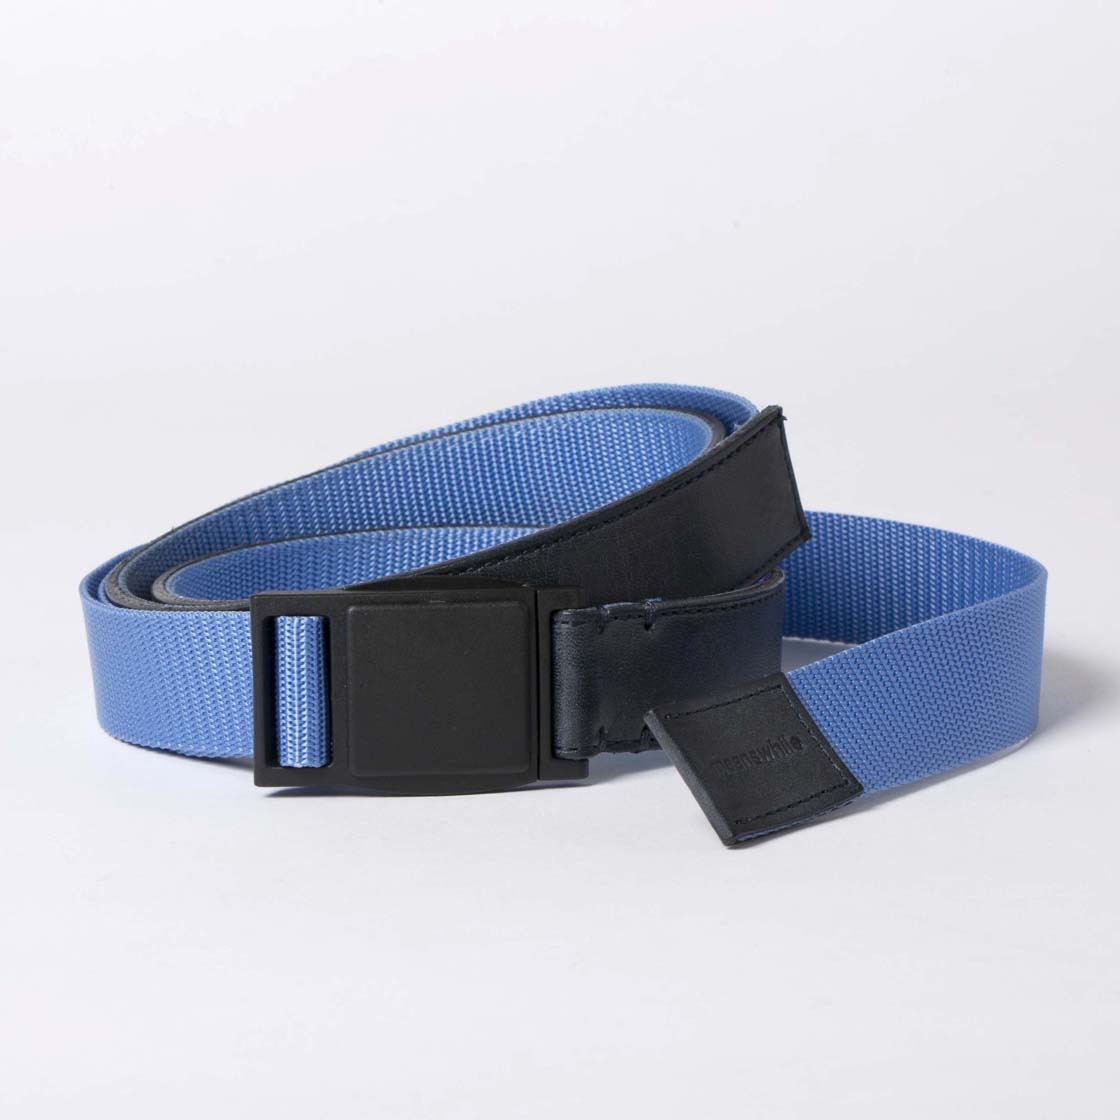 Leather/Nylon Quick Release Belt